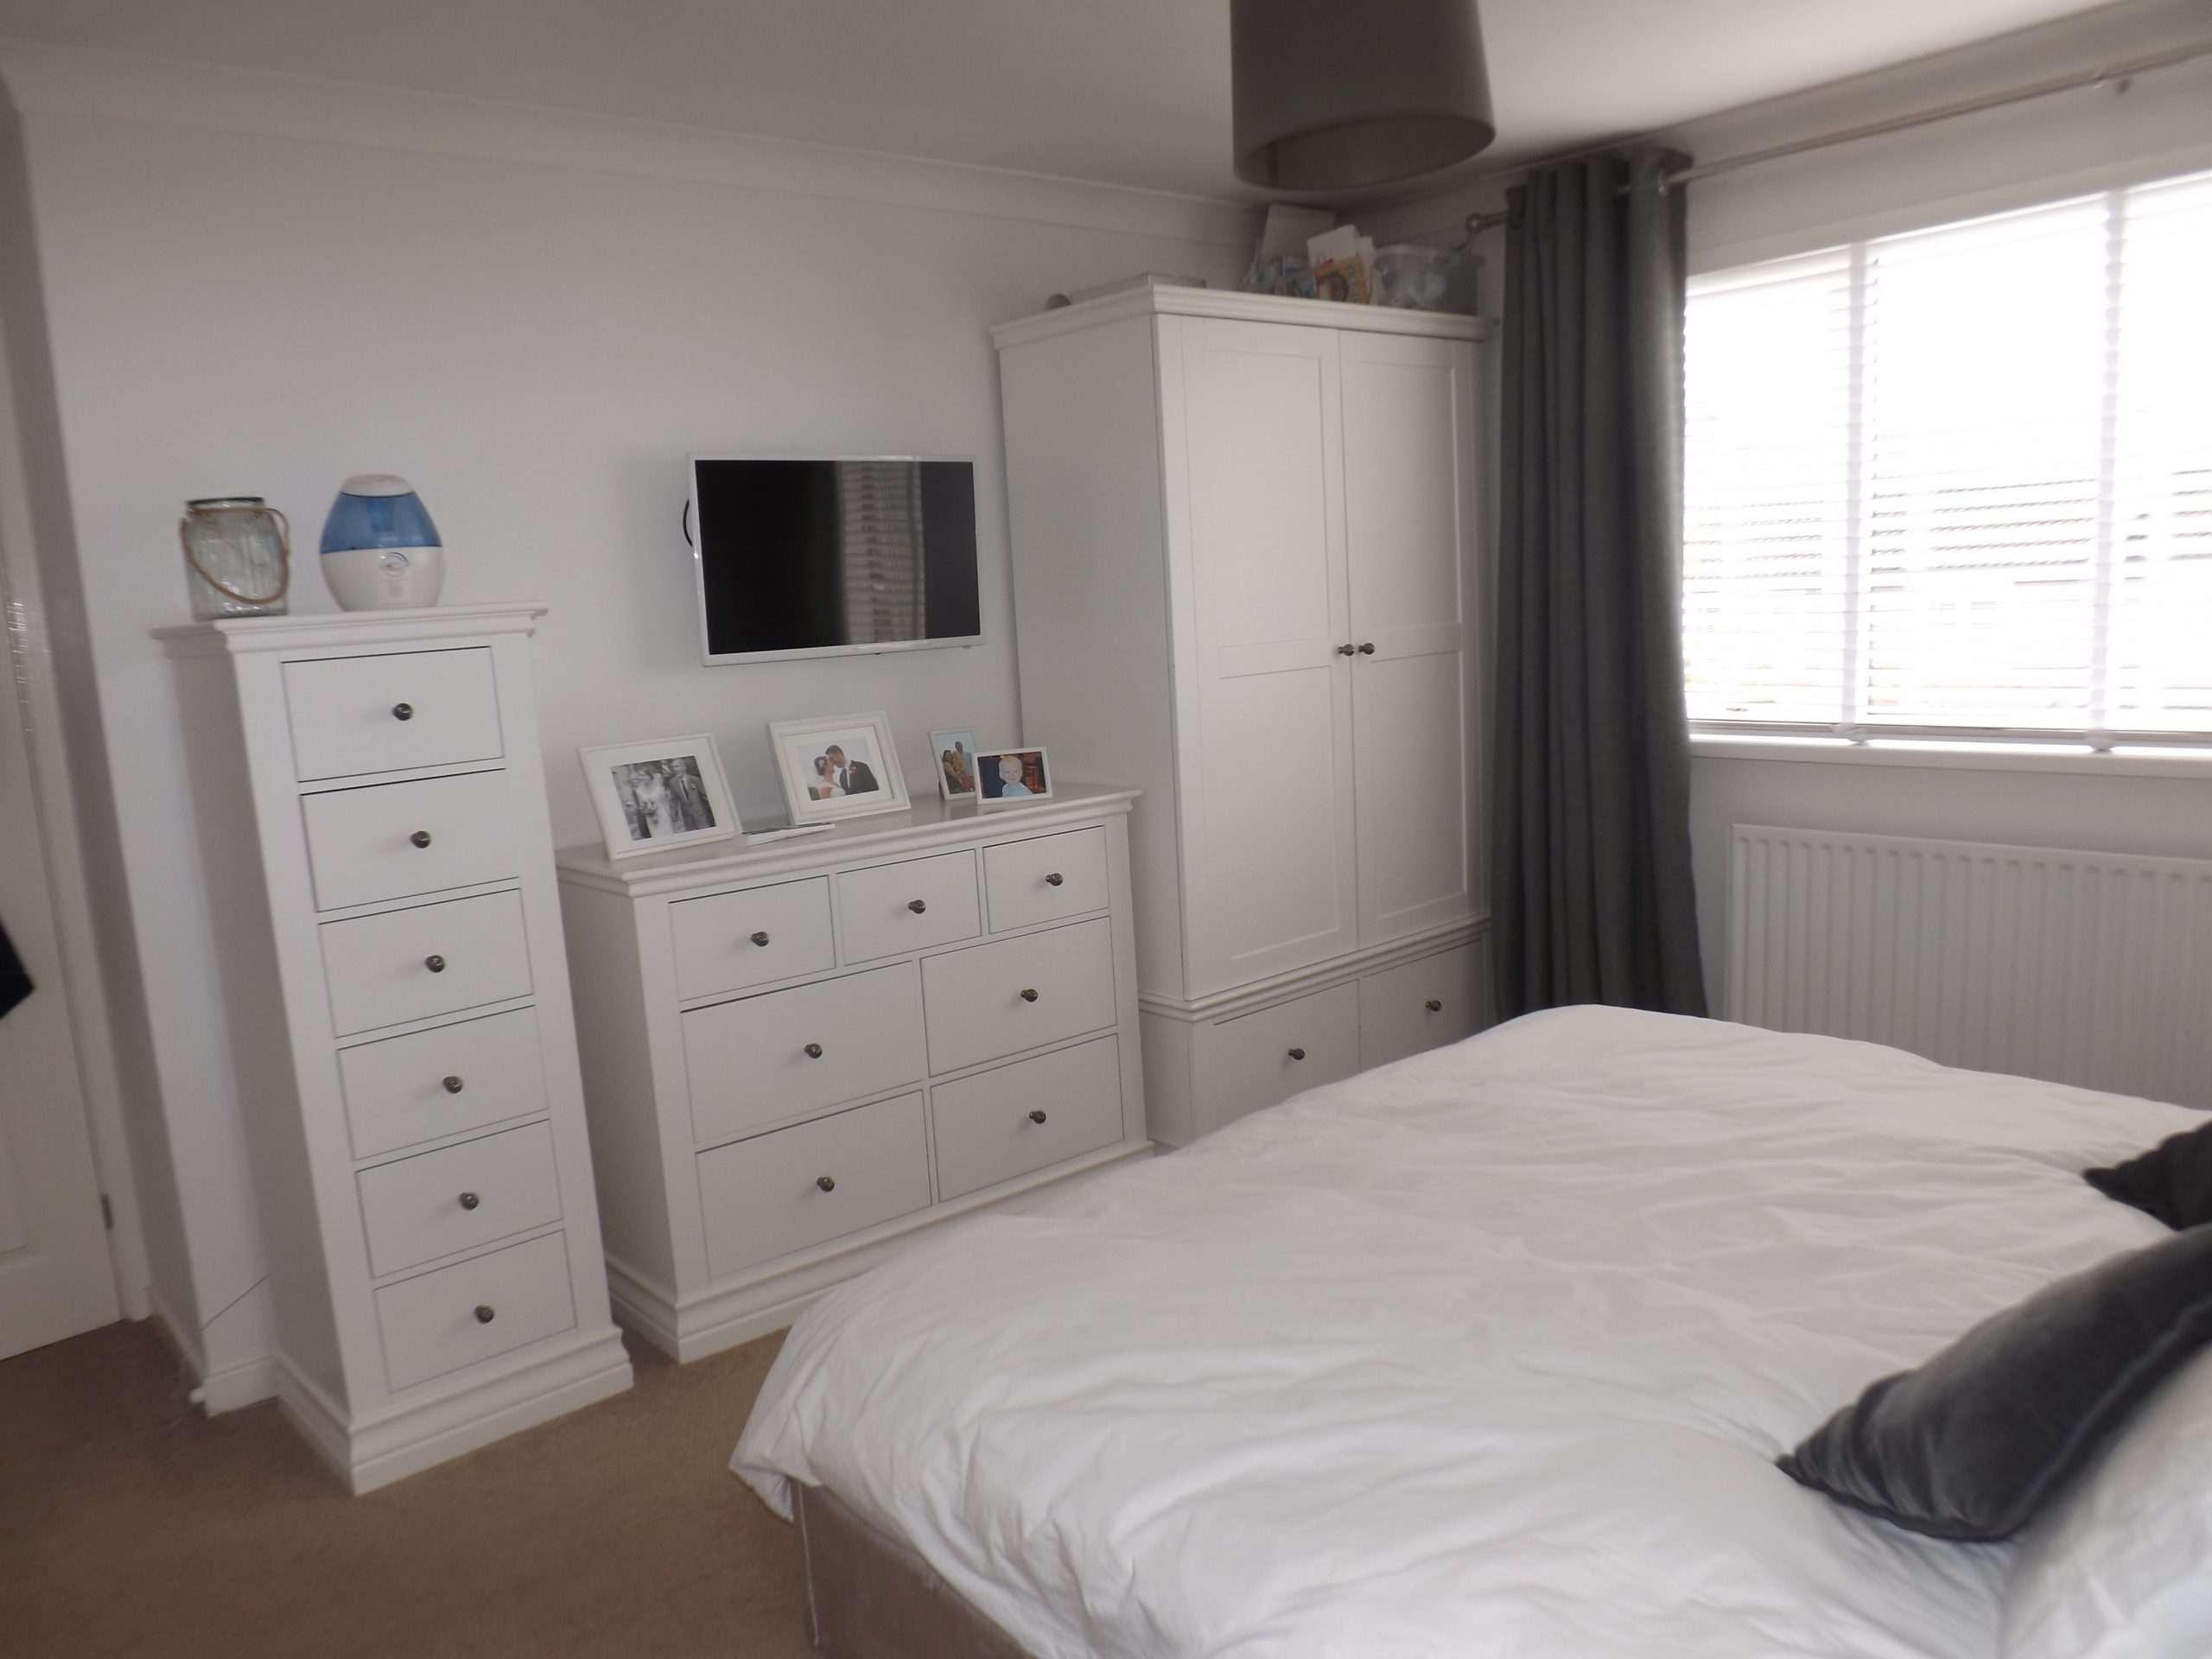 House bedroom in Friarside, Witton Gilbert